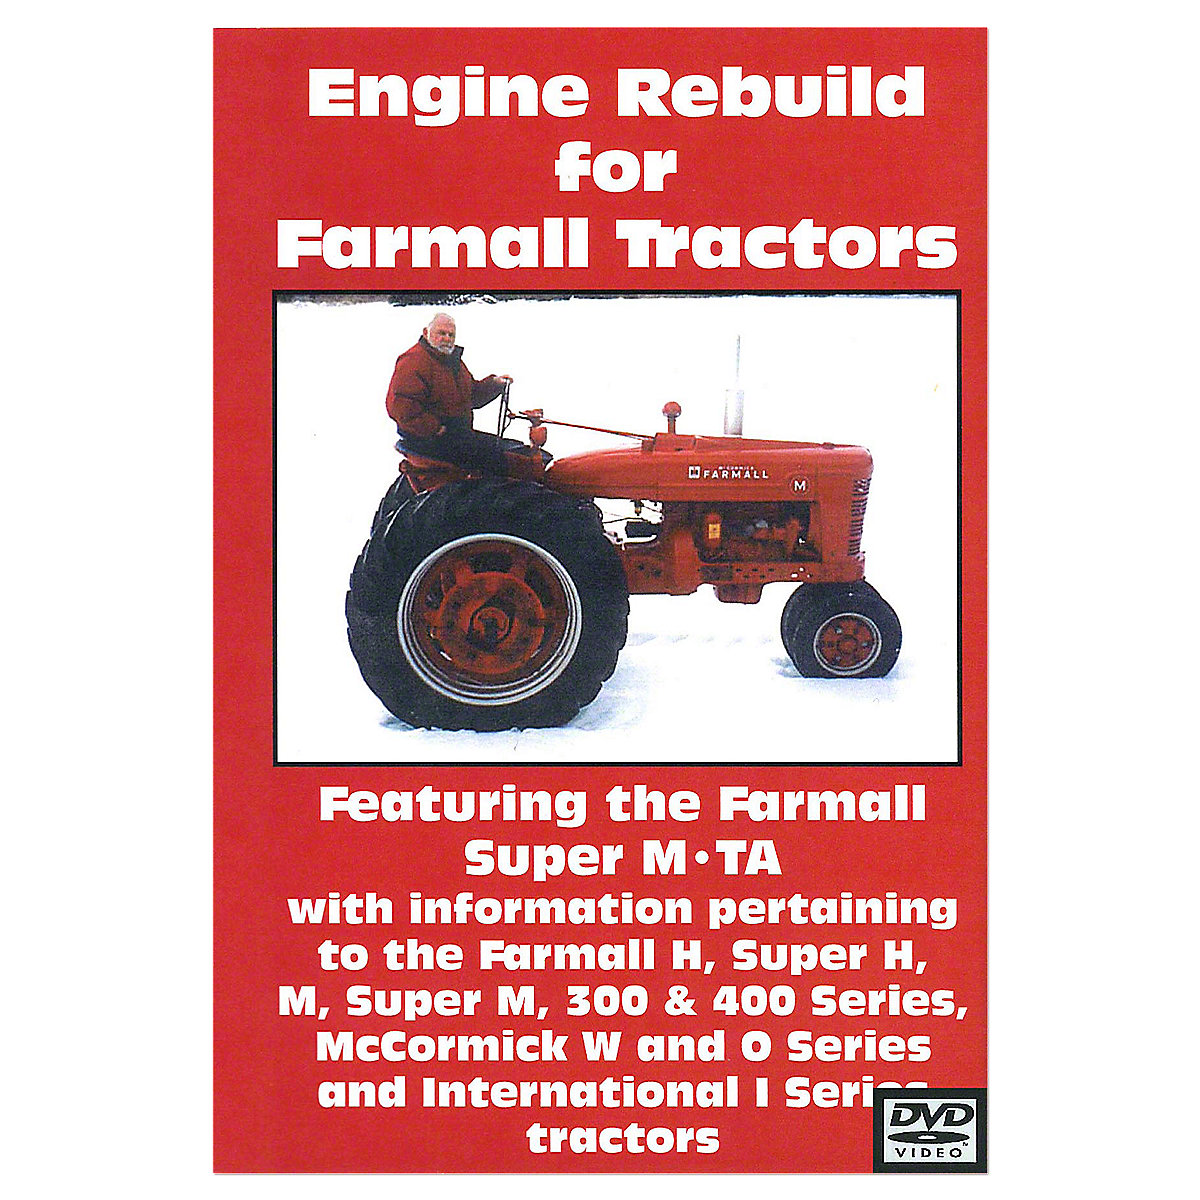 Rep101 Operators Manual Farmall Supe Wiring Diagram For Super H M 300 400 Engine Rebuild Video Dvd